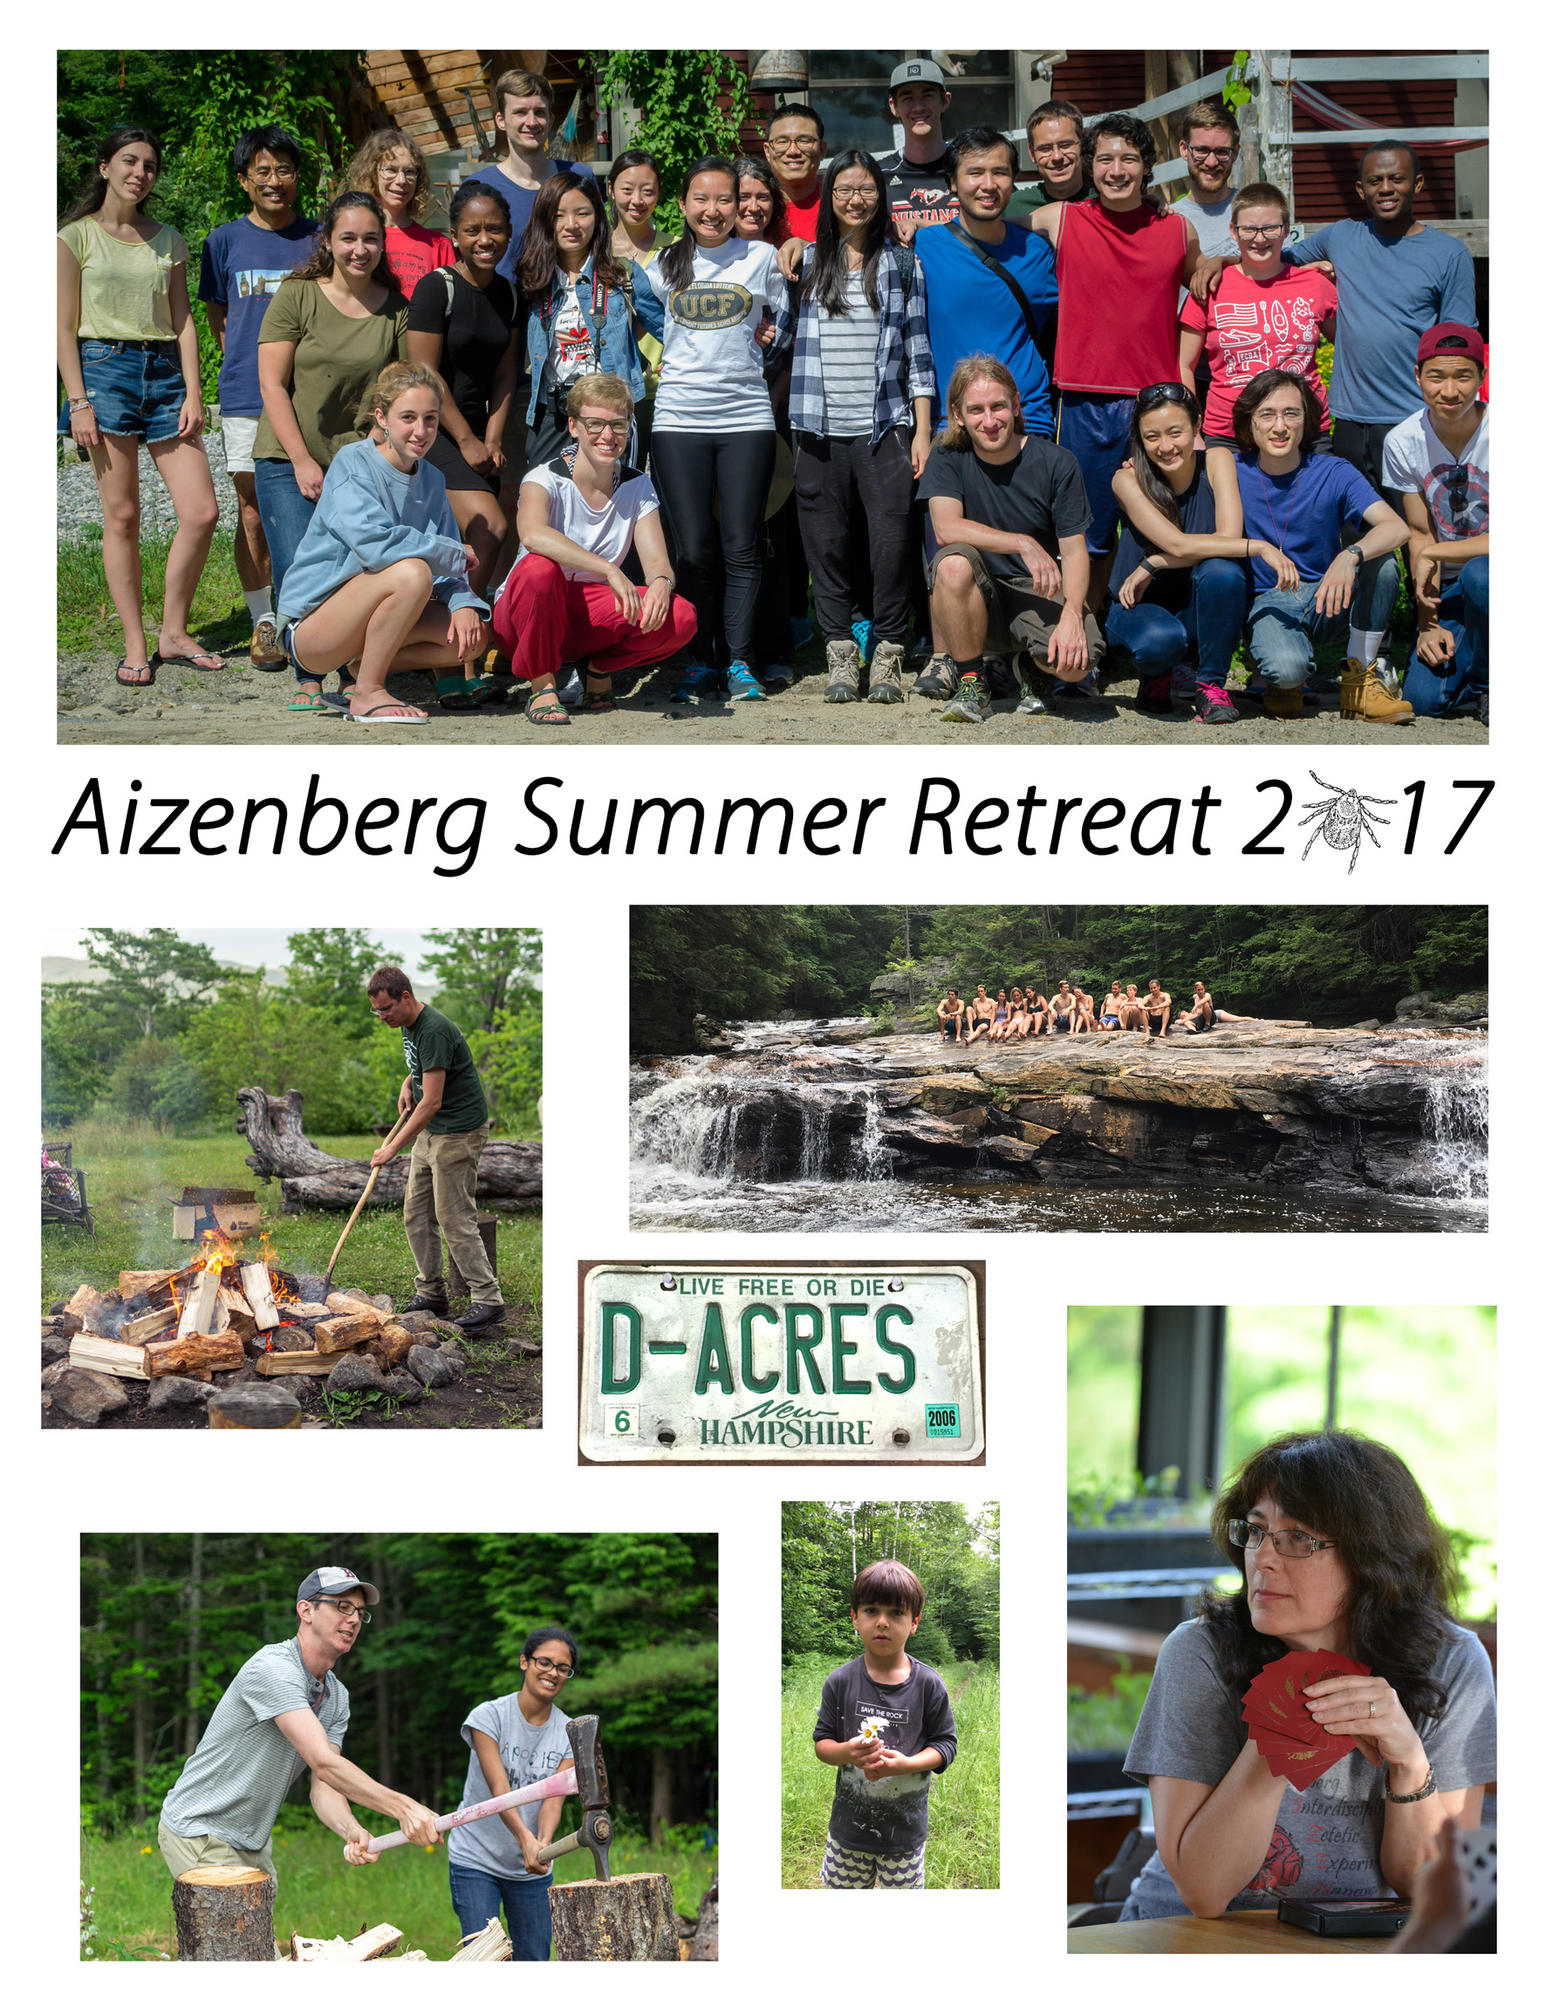 Aizenberg Summer Retreat at D'Acres, NH